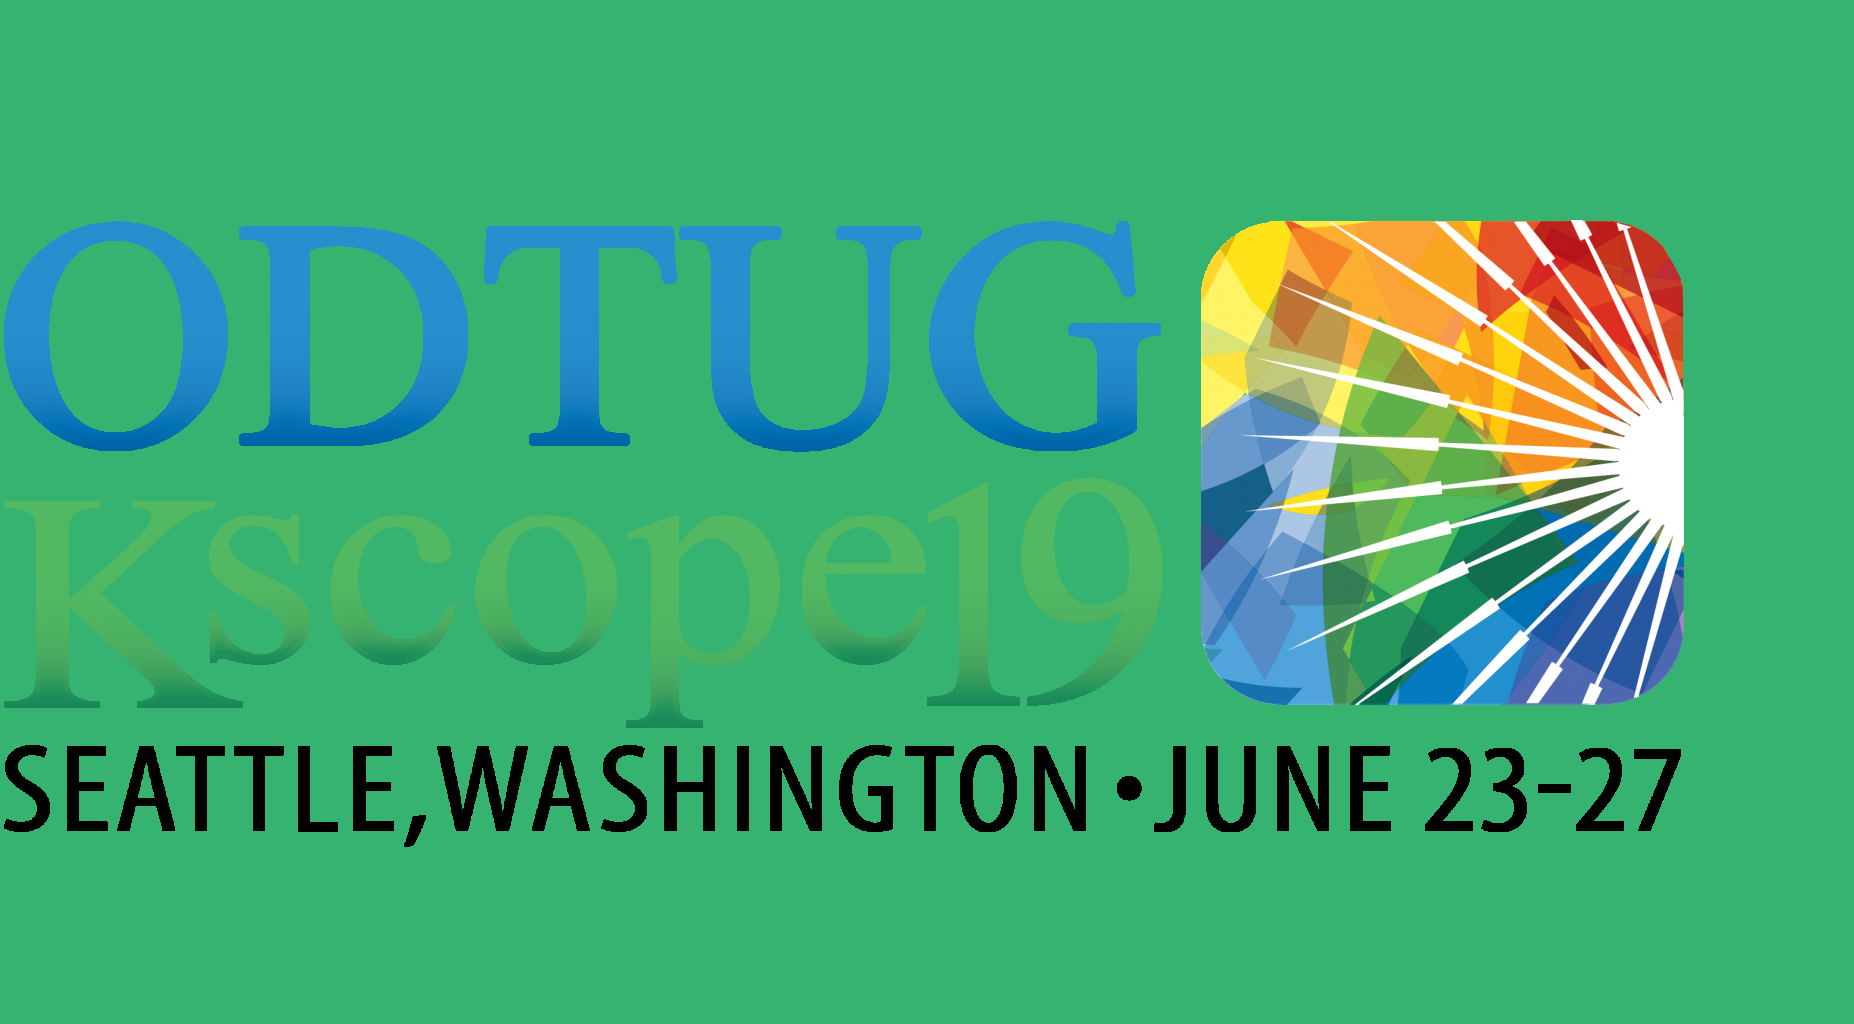 Kscope19 Logo.png